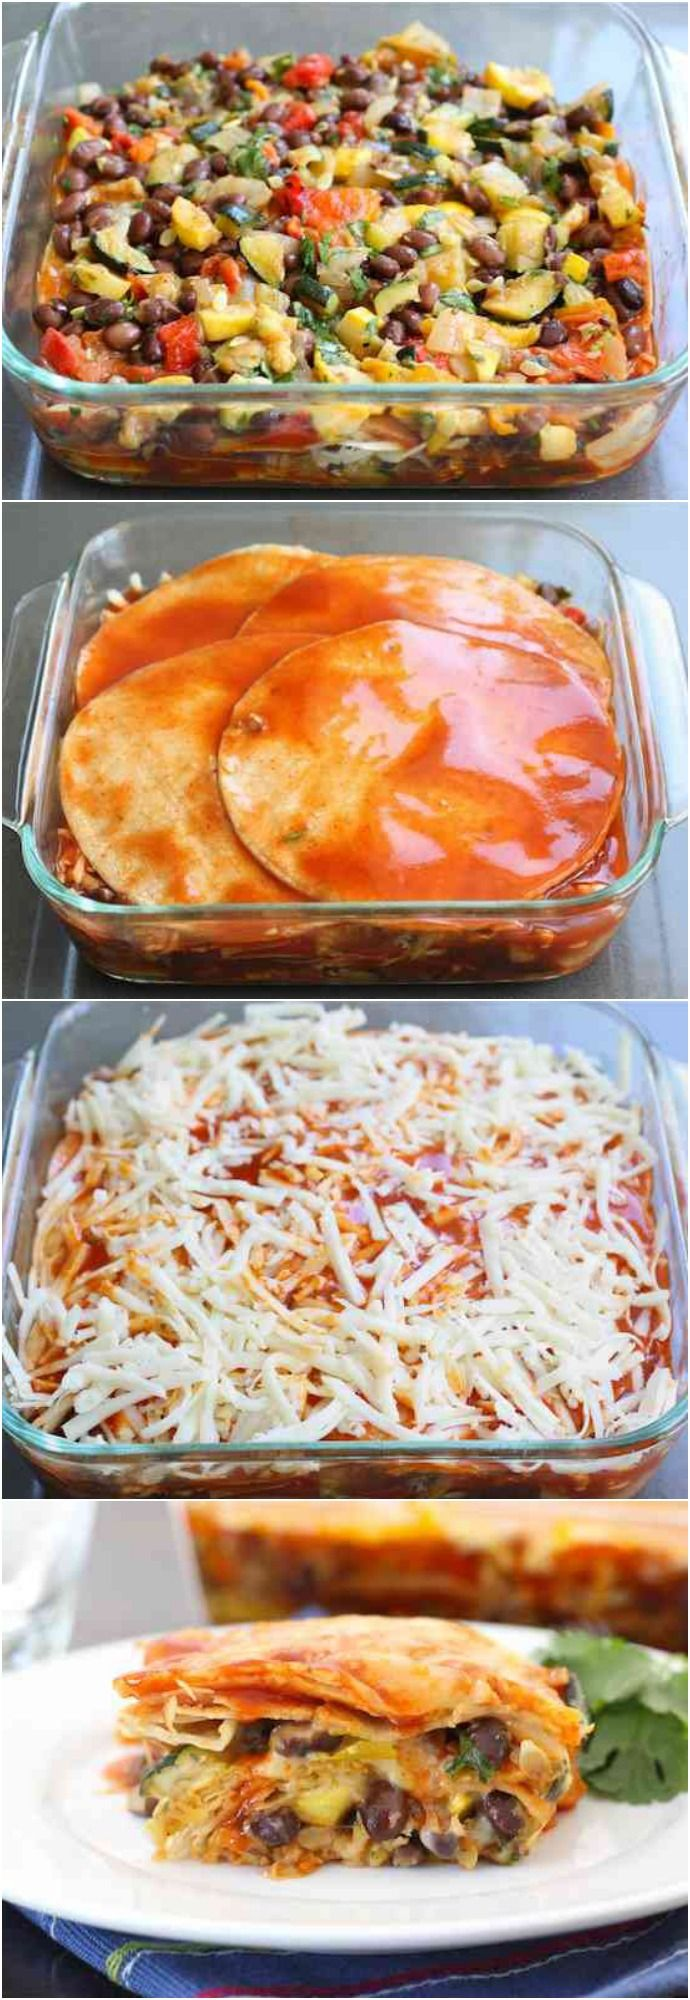 Stacked Roasted Vegetable Enchiladas Recipe on twopeasandtheirpod.com. Love these easy enchiladas. They freeze well too! #vegetarian - add meat